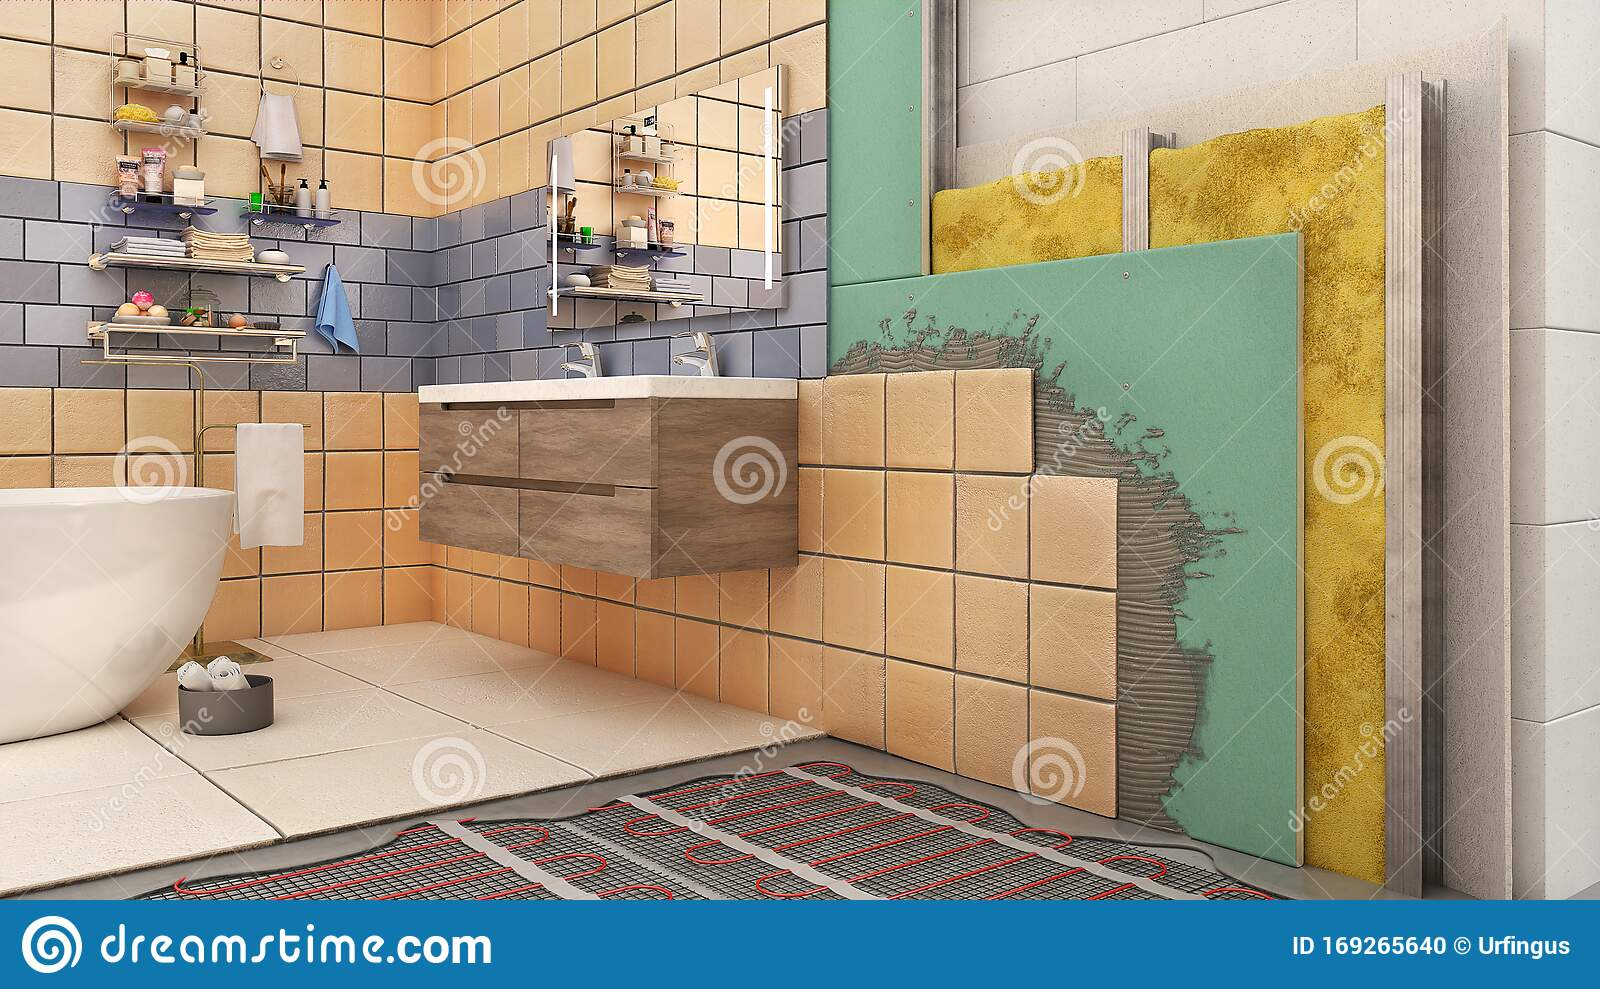 Walls And Floor Thermal Insulation In Bathroom Interior Stock